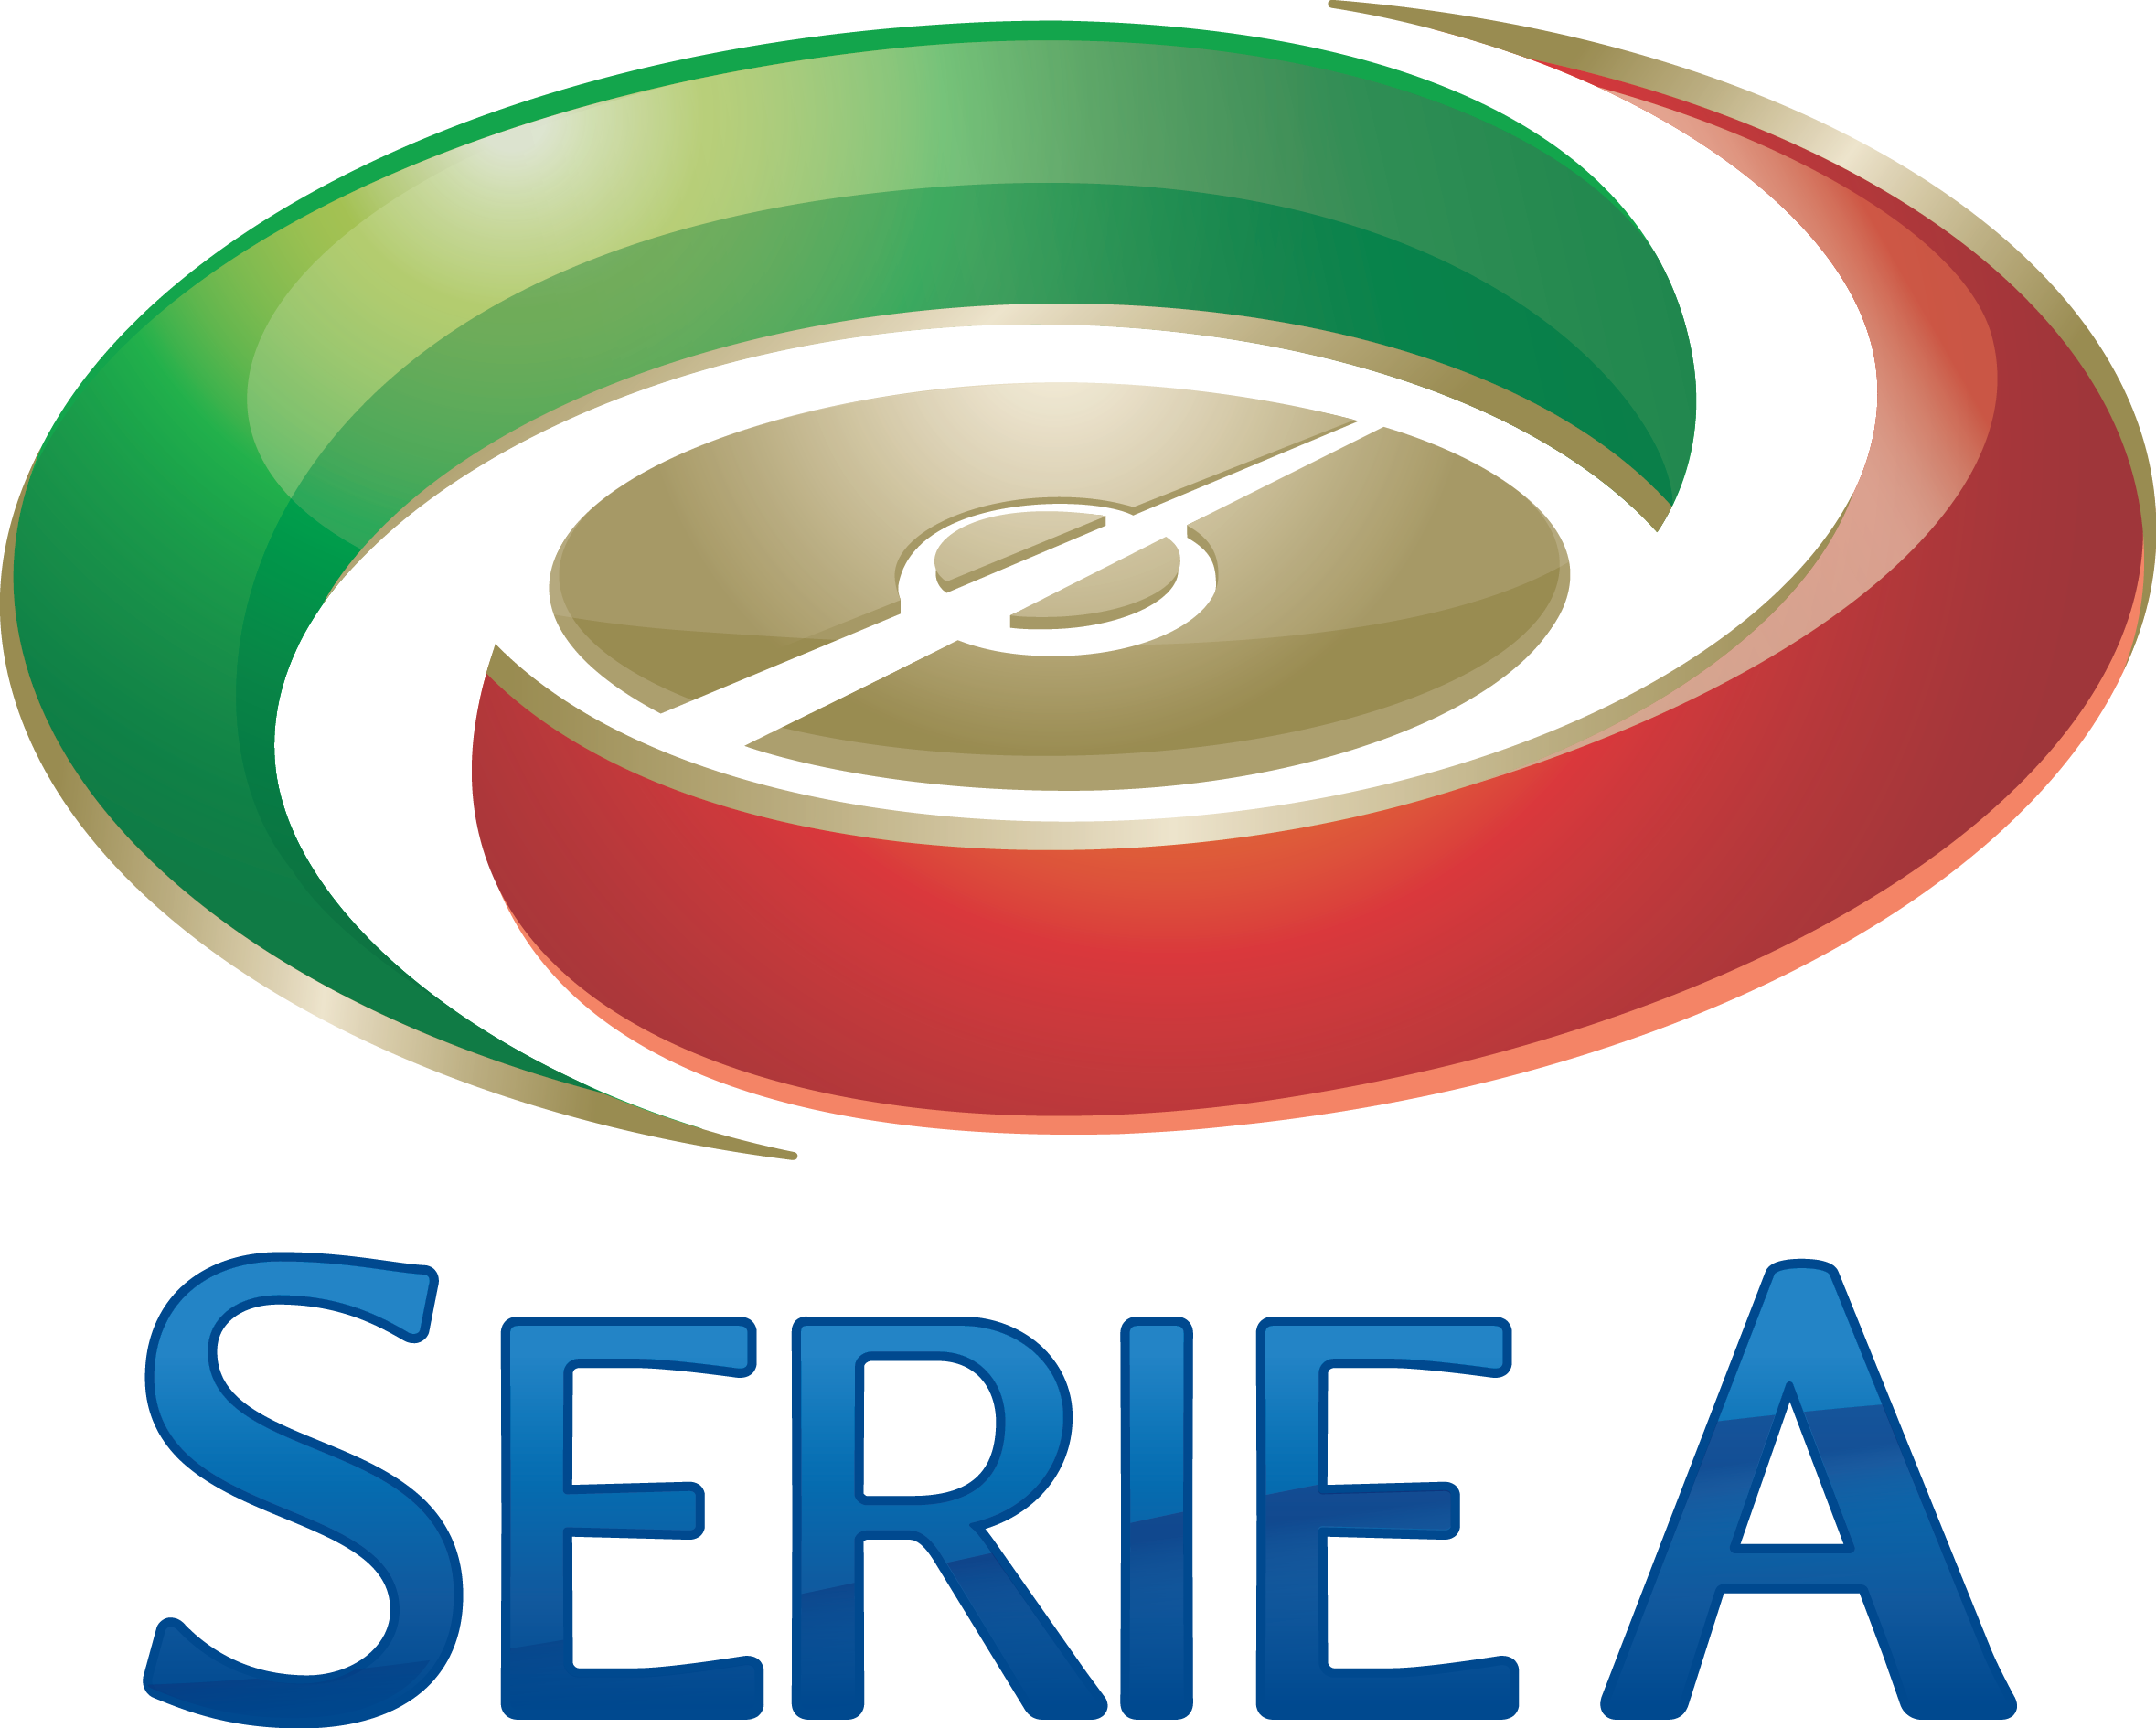 Sampdoria vs AS Roma zusammenfassung und tor video 23/09/2015